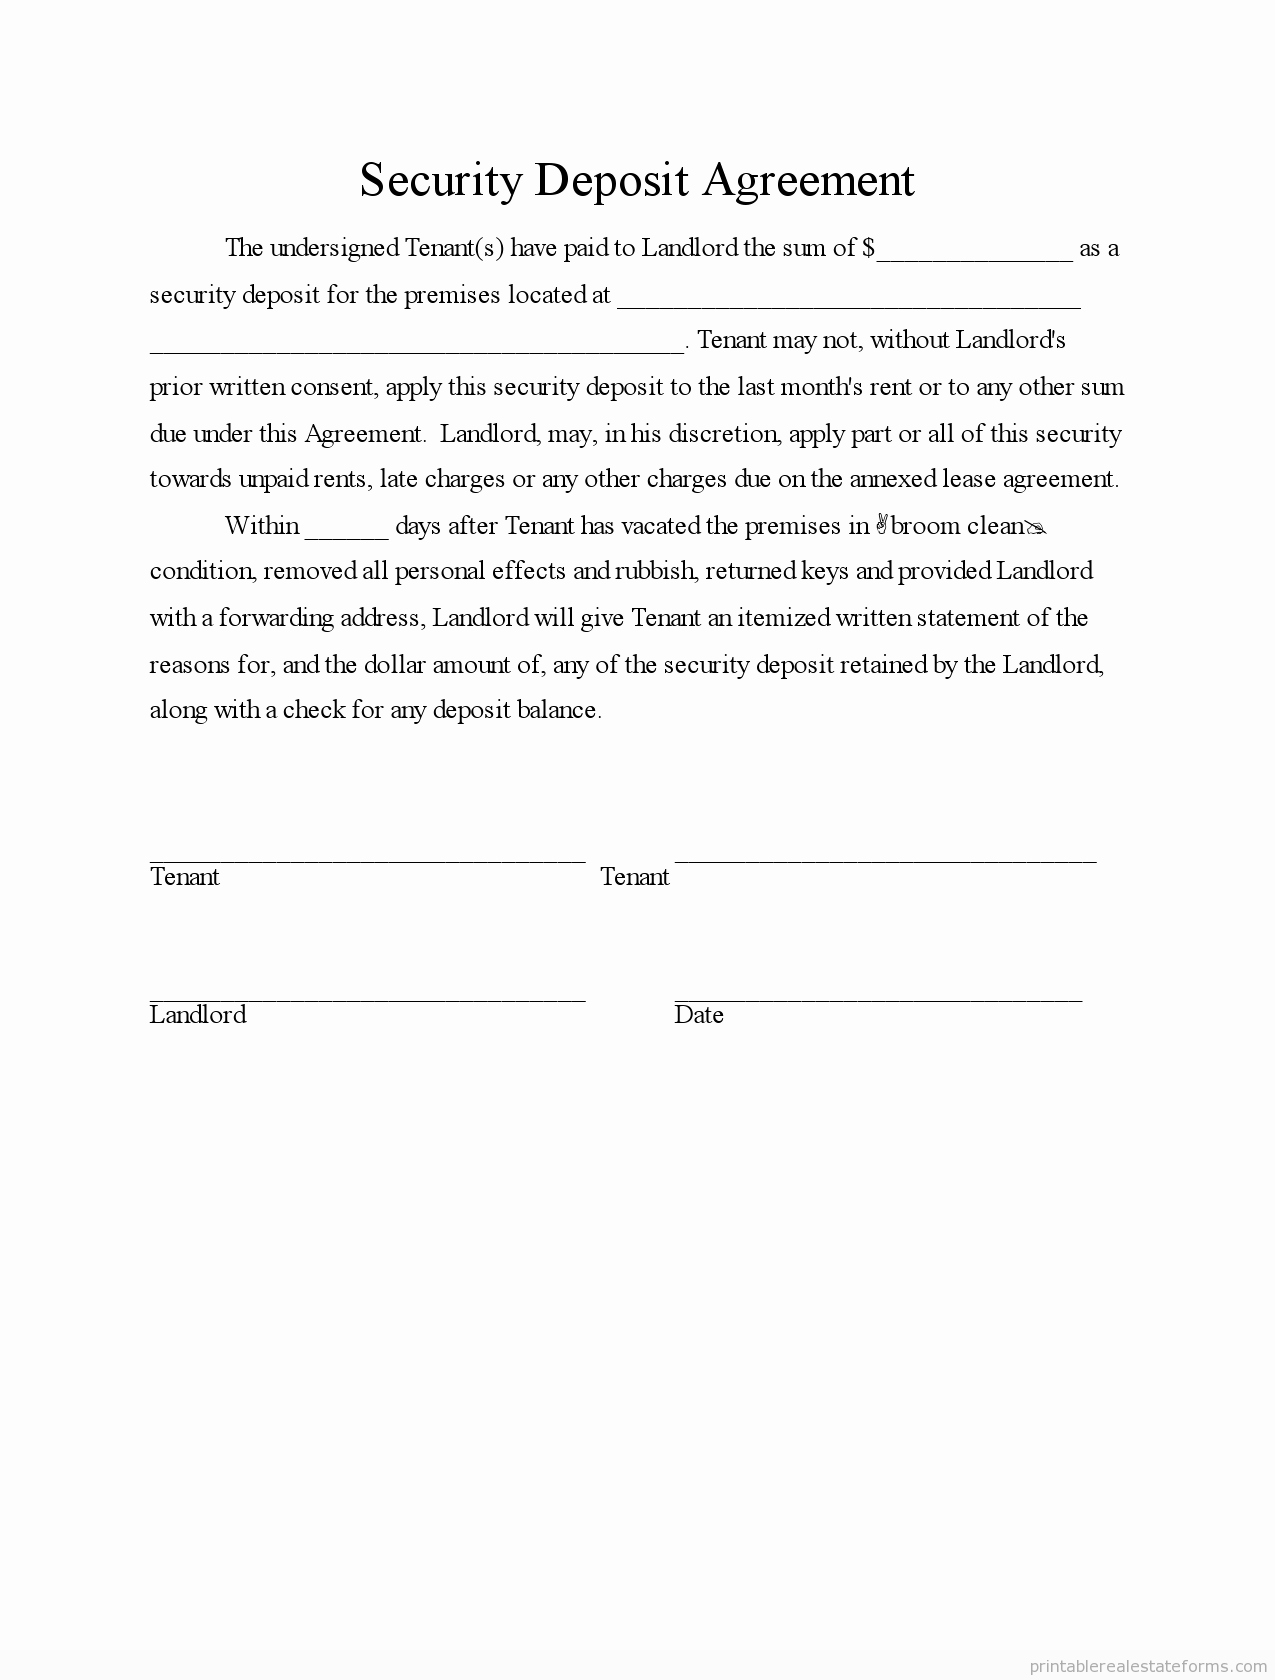 Car Deposit Contract Template Fresh Printable Security Deposit Agreement 3 Template 2015